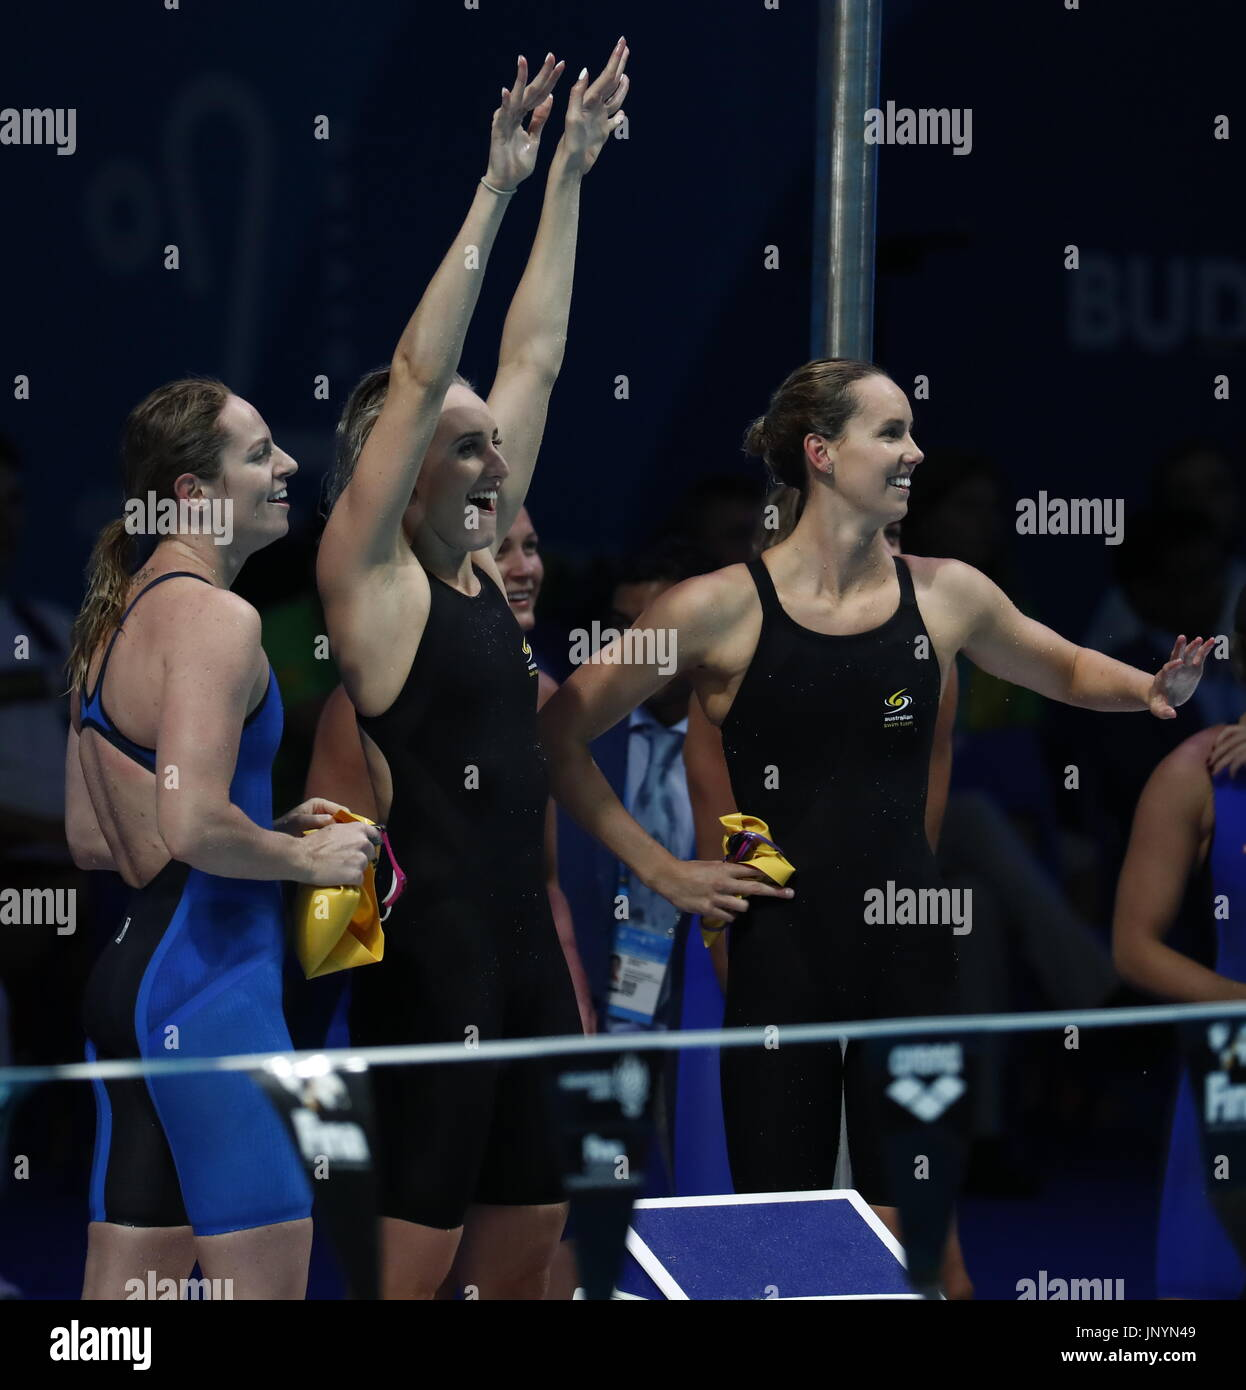 Budapest. 30th July, 2017. Team Australia celebrate after the women's 4x100m medley relay final at the 17th FINA World Championships held in Budapest, Hungary on July 30, 2017. Credit: Ding Xu/Xinhua/Alamy Live News - Stock Image